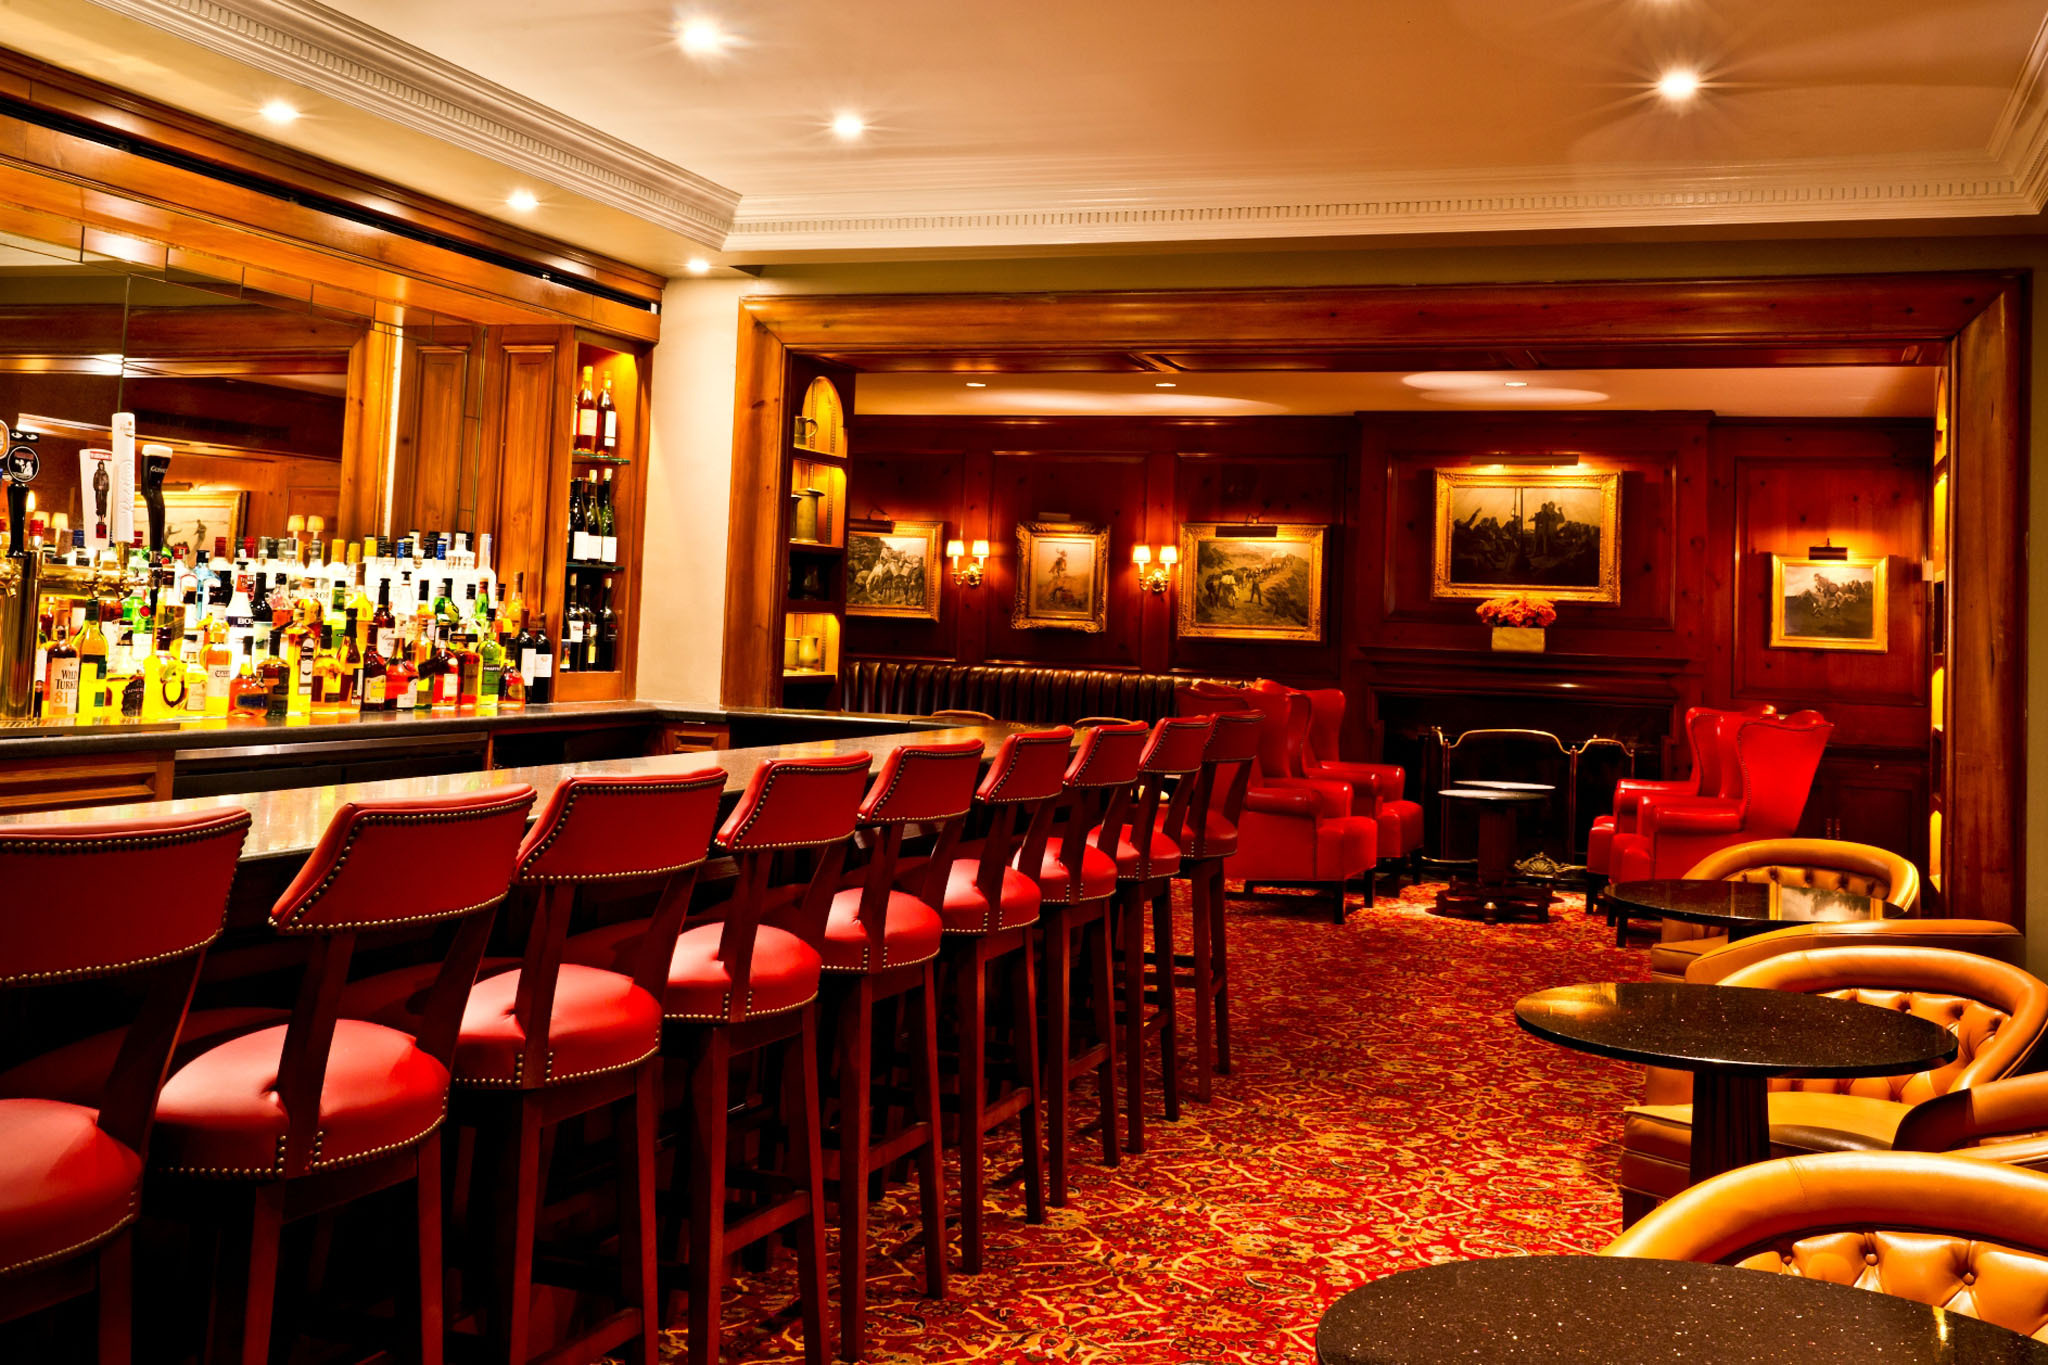 Bar '21' | Bars in Midtown West, New York